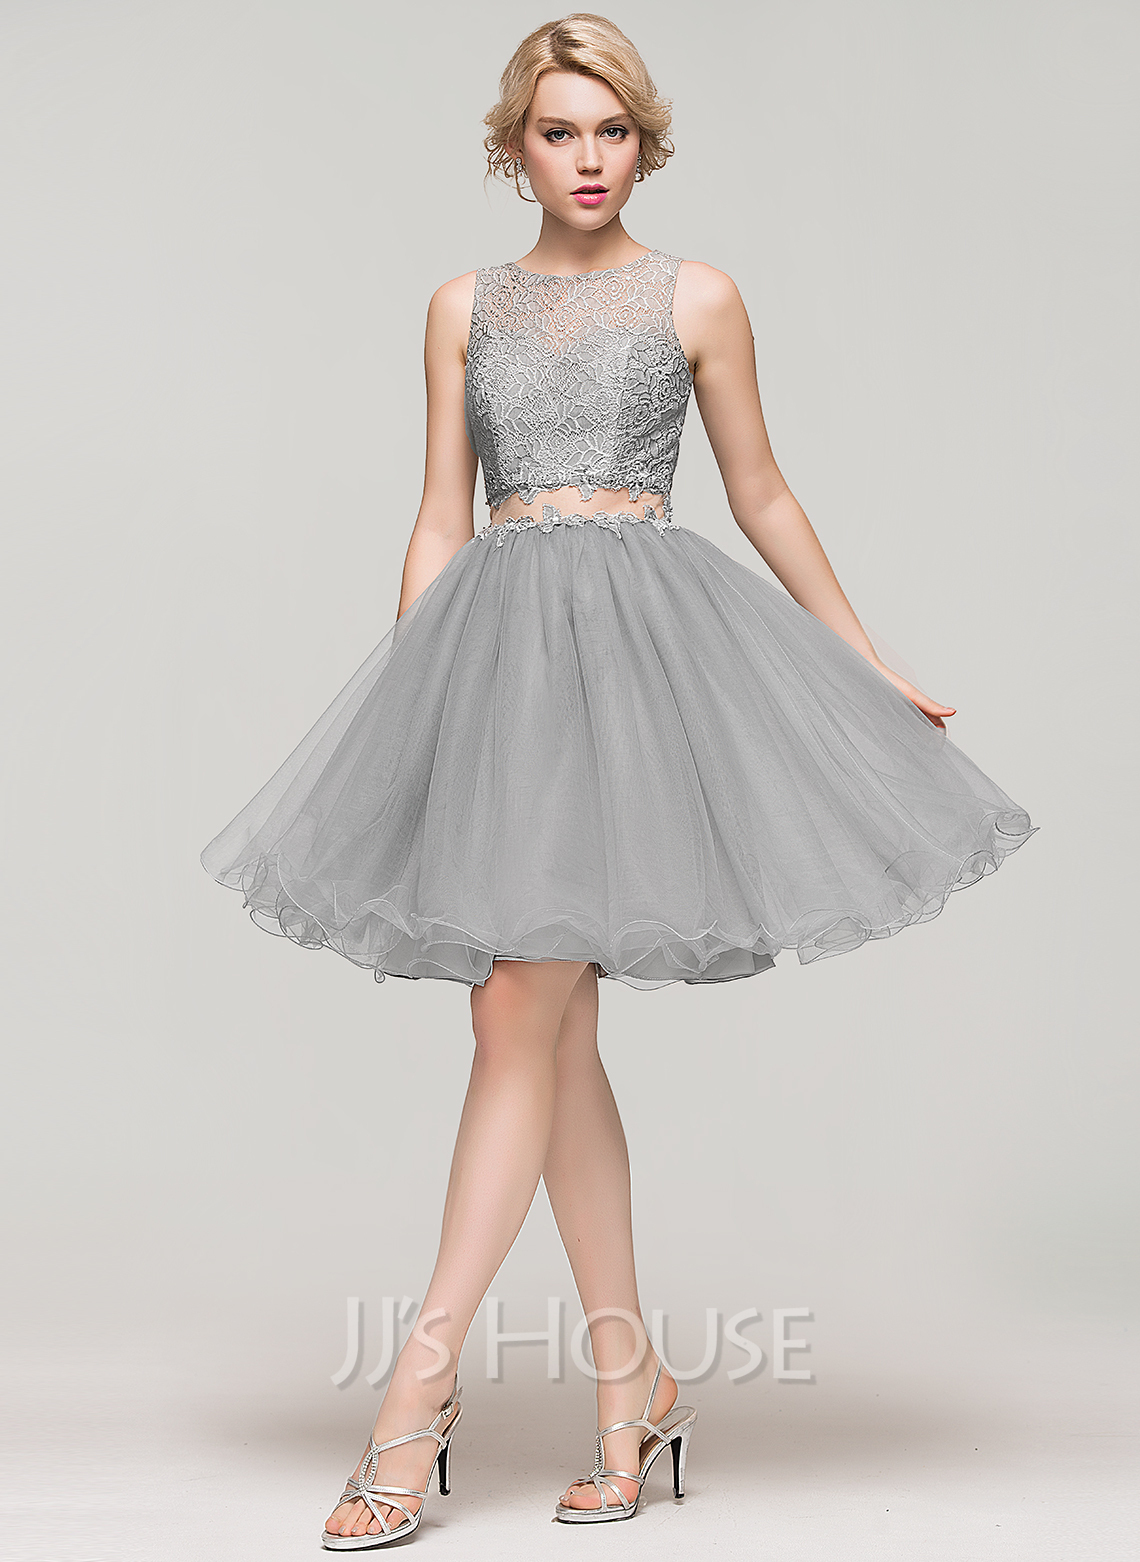 ace39a3d2d3 A-Line Princess Scoop Neck Knee-Length Tulle Lace Cocktail Dress With  Beading. Loading zoom